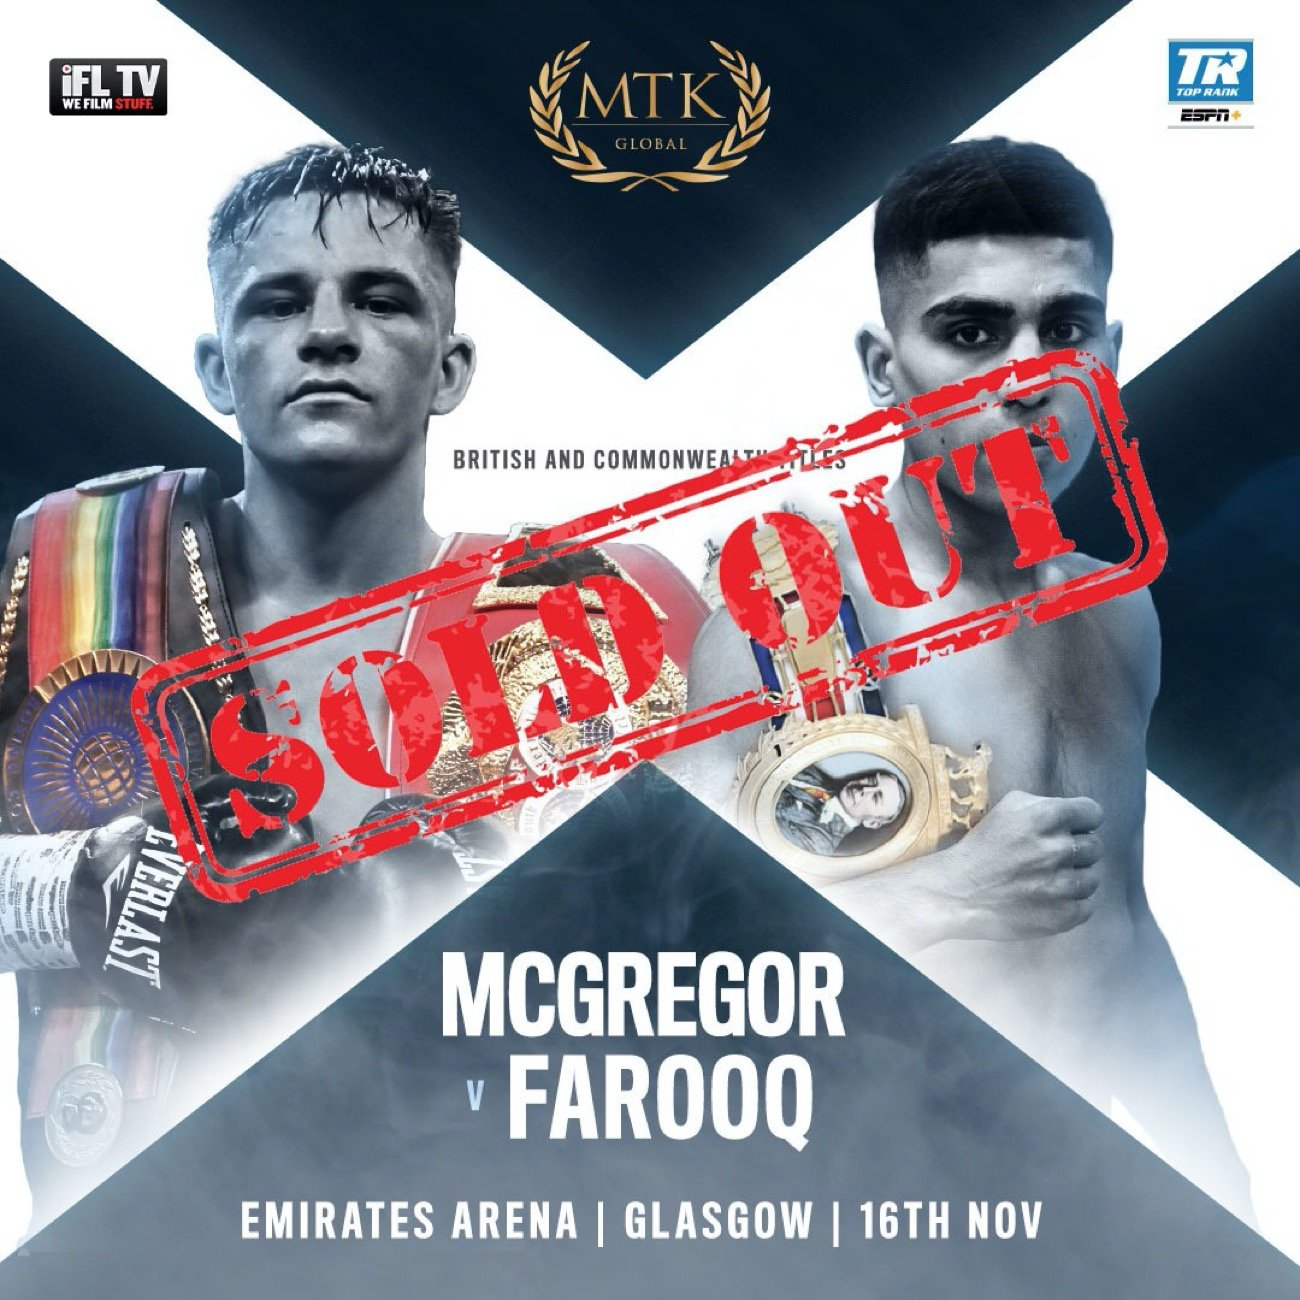 Kieran Smith, Lee McGregor, Paddy Donovan - It's the all-Scottish fight that has the whole of boxing talking – and here are the final presser quotes.